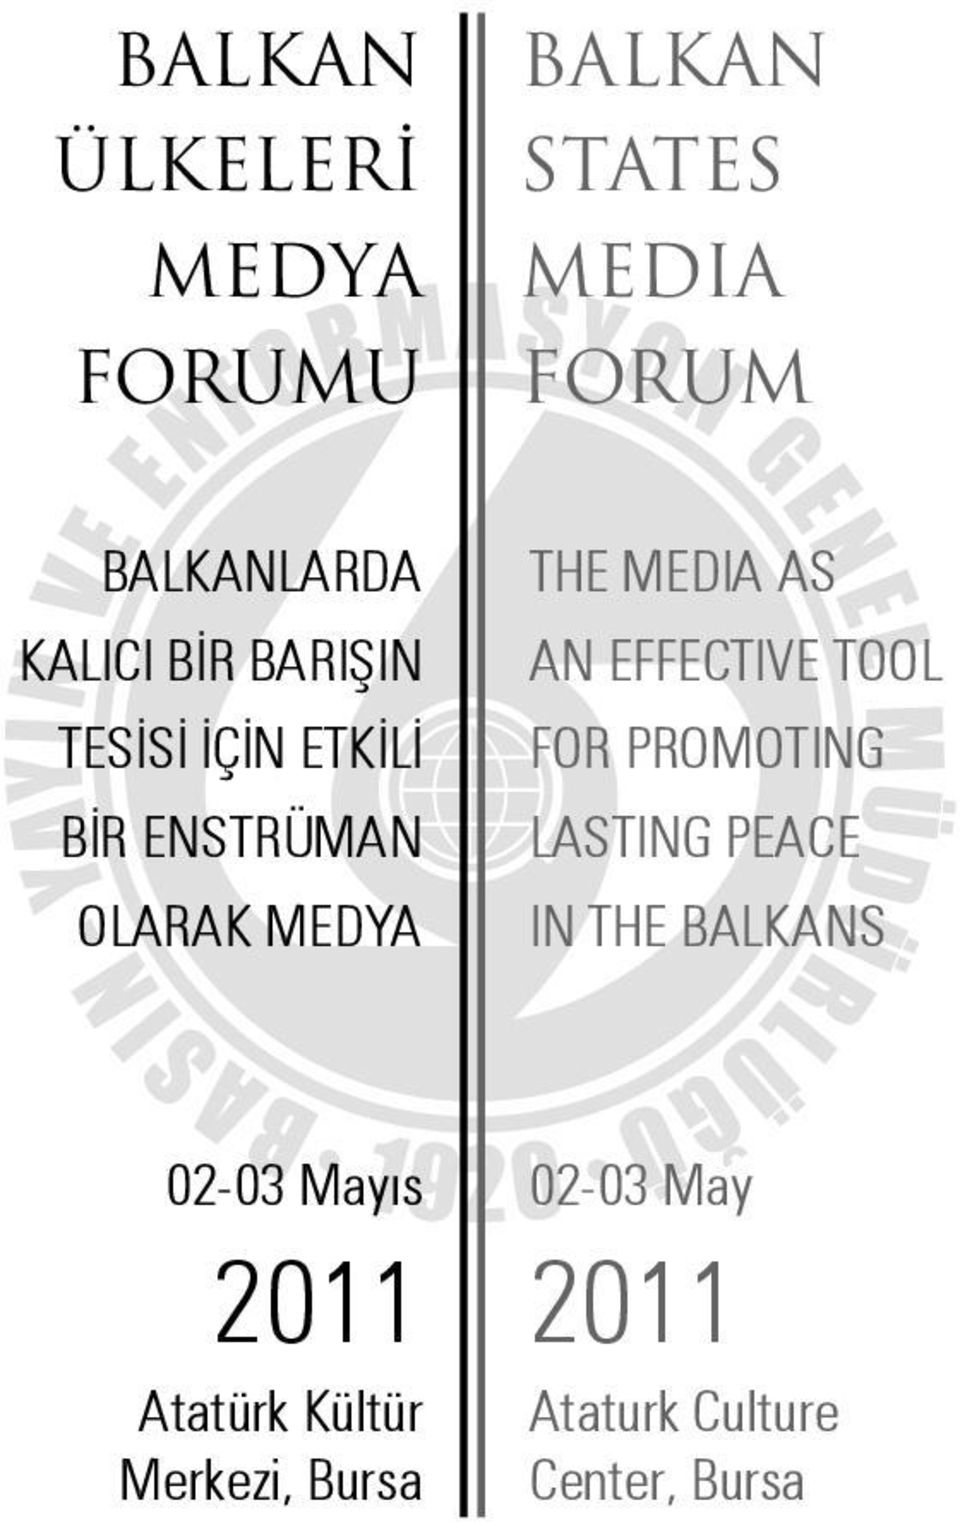 EFFECTIVE TOOL FOR PROMOTING LASTING PEACE IN THE BALKANS 02-03 Mayıs 2011